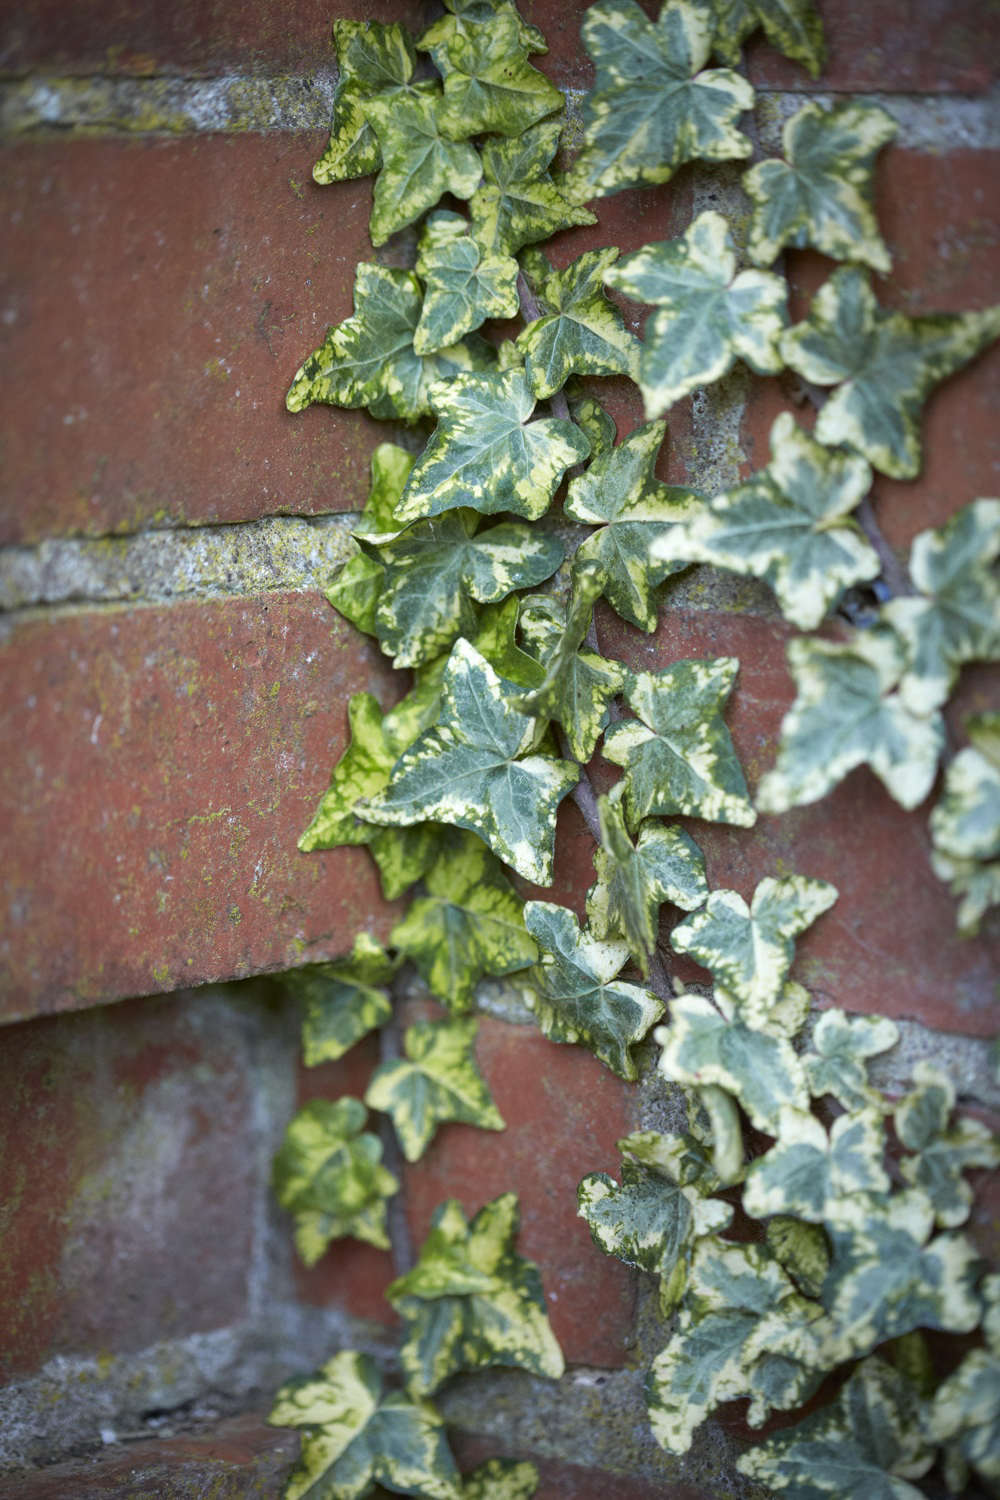 Ivy thrives in soil that is rich in limestone or rubble. Shown here is Variegated Hedera helix &#8